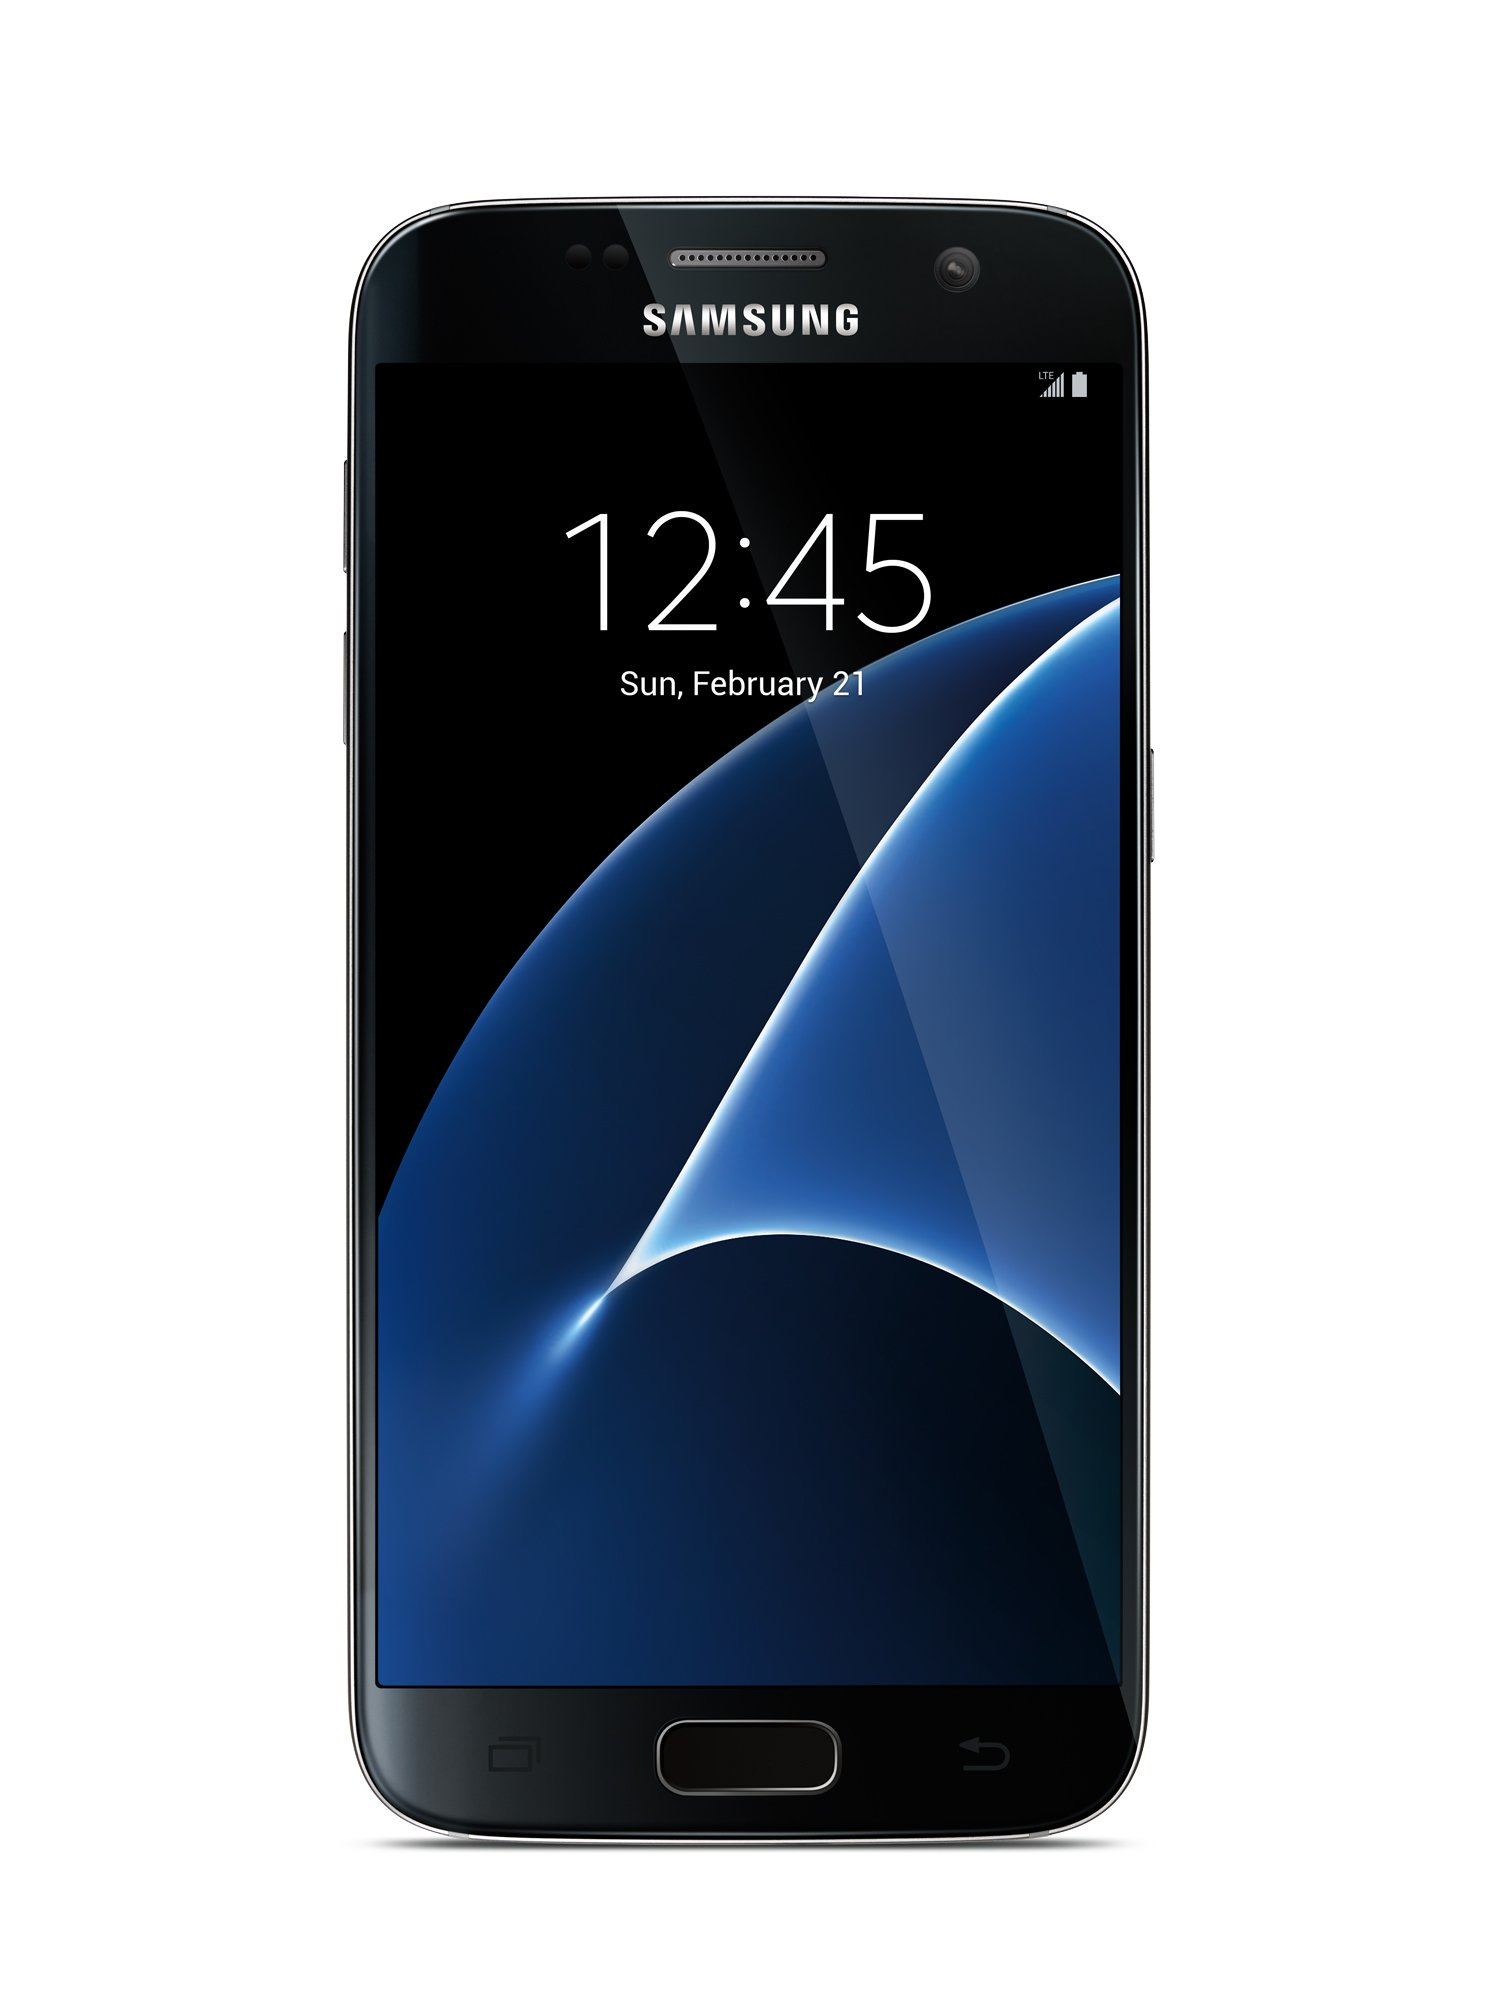 Samsung Galaxy S7 Black 32GB (Boost Mobile) by SoonerSoft Electronics (Image #1)